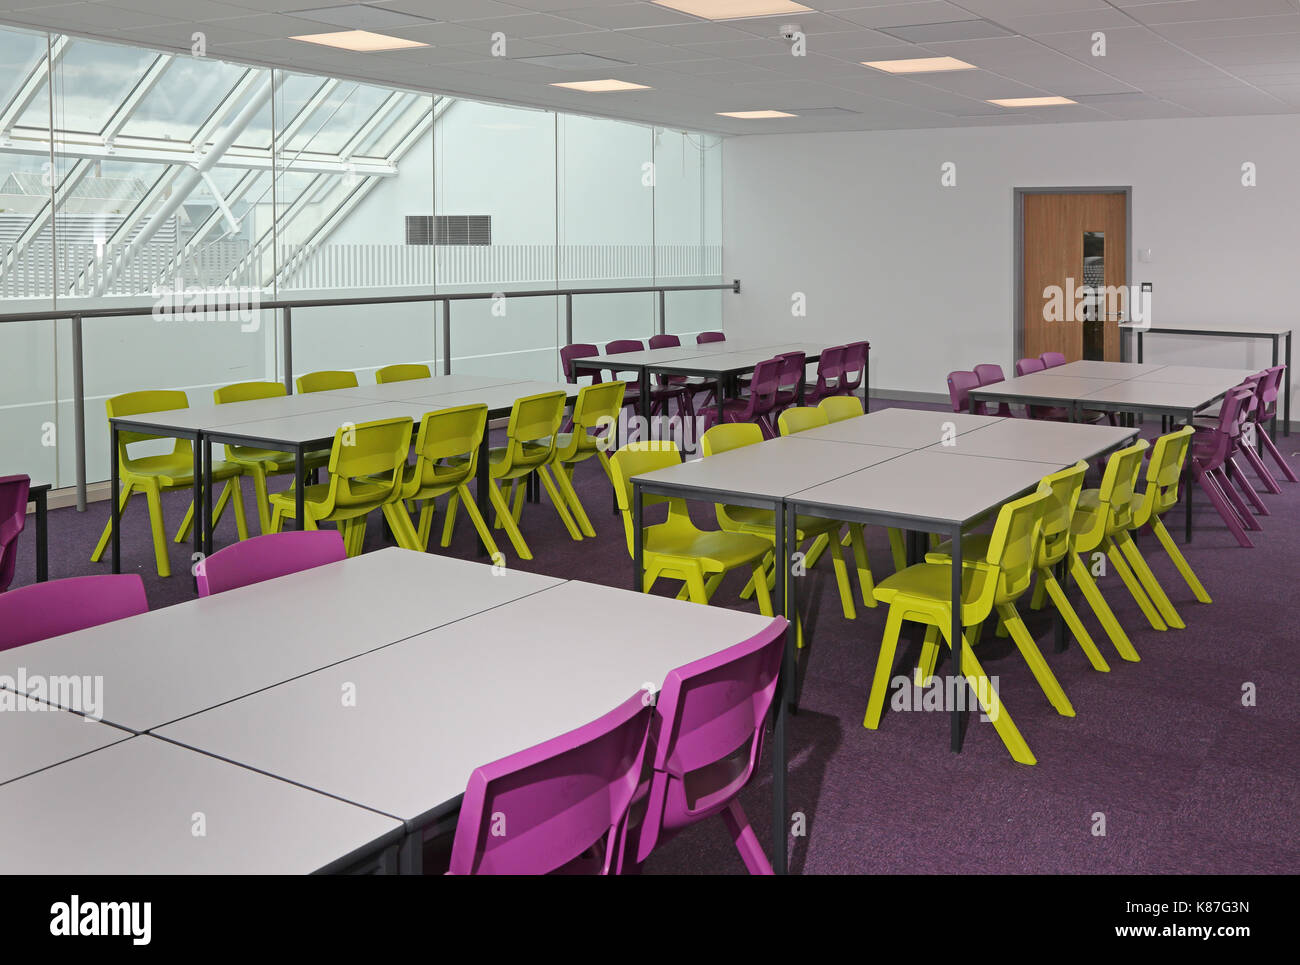 Modern Classroom Building : Converted school stock photos